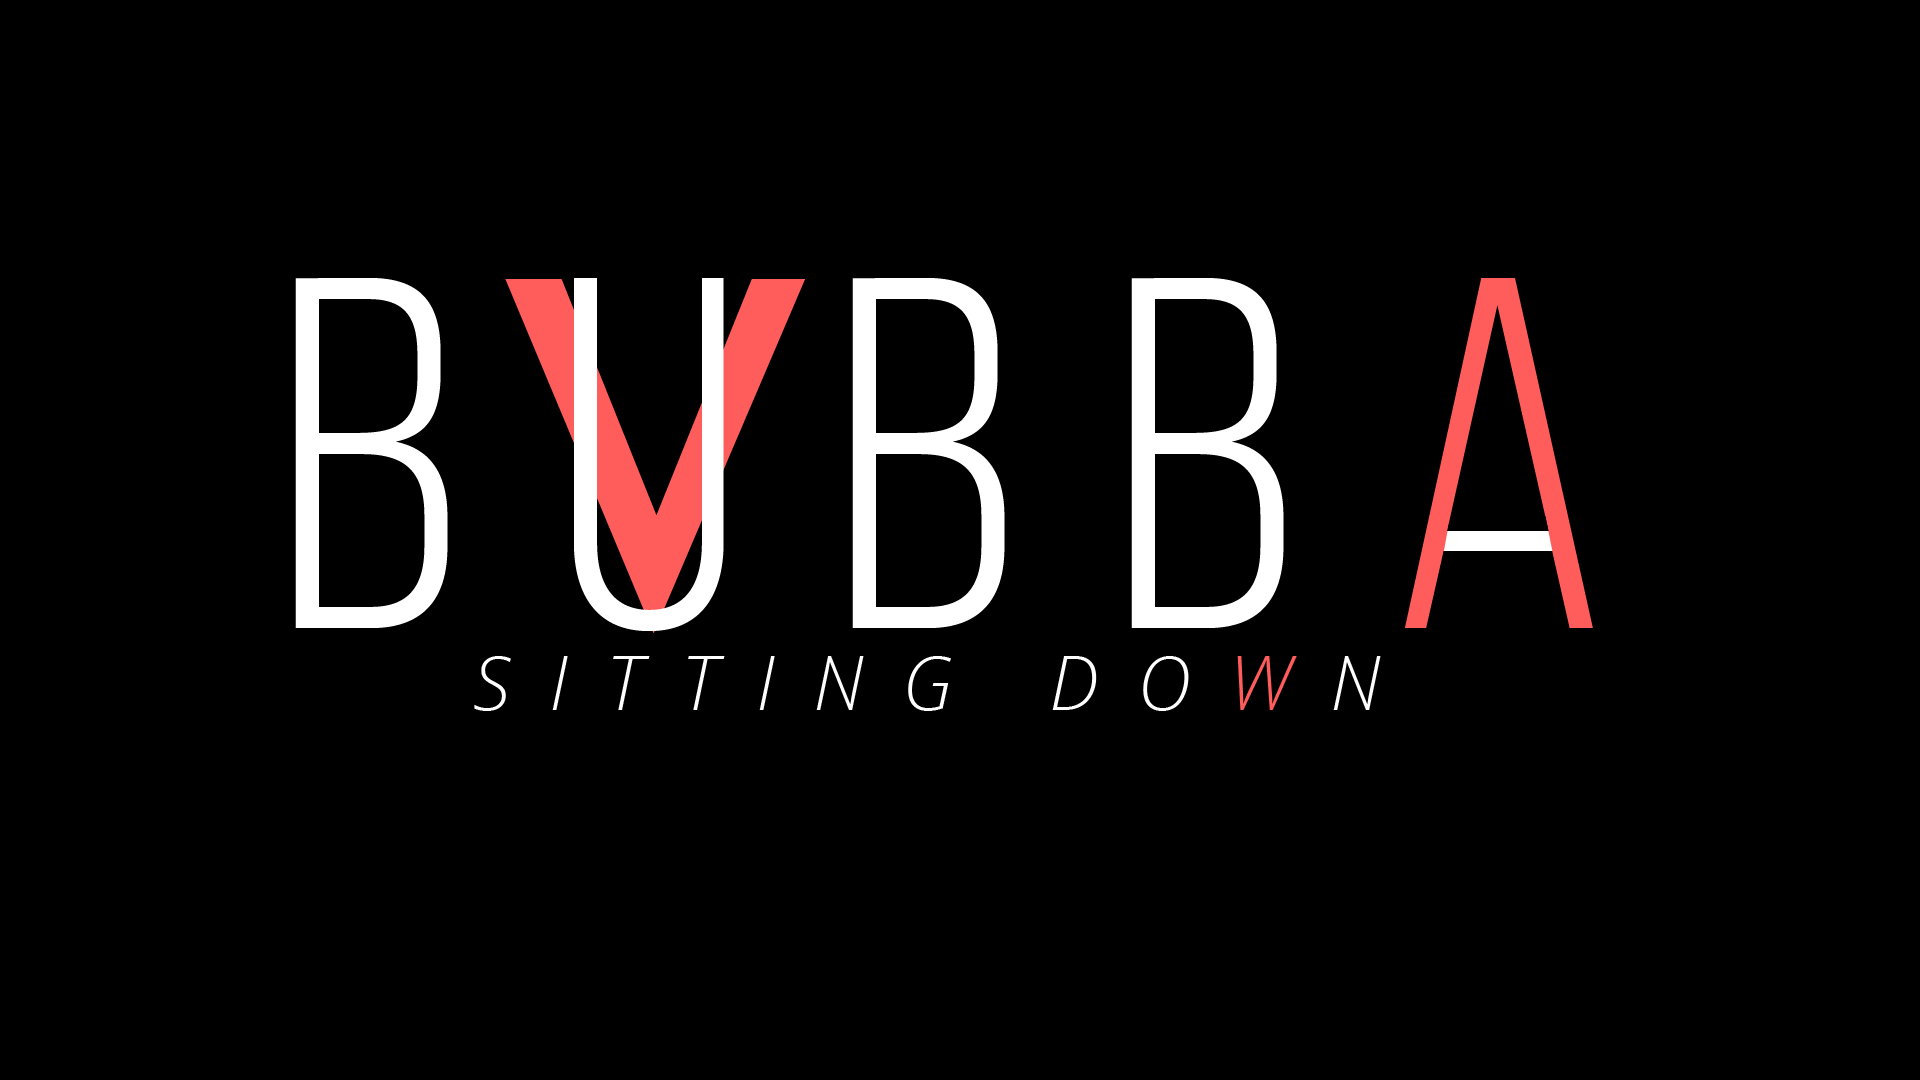 Bubba : SITTING DOWN